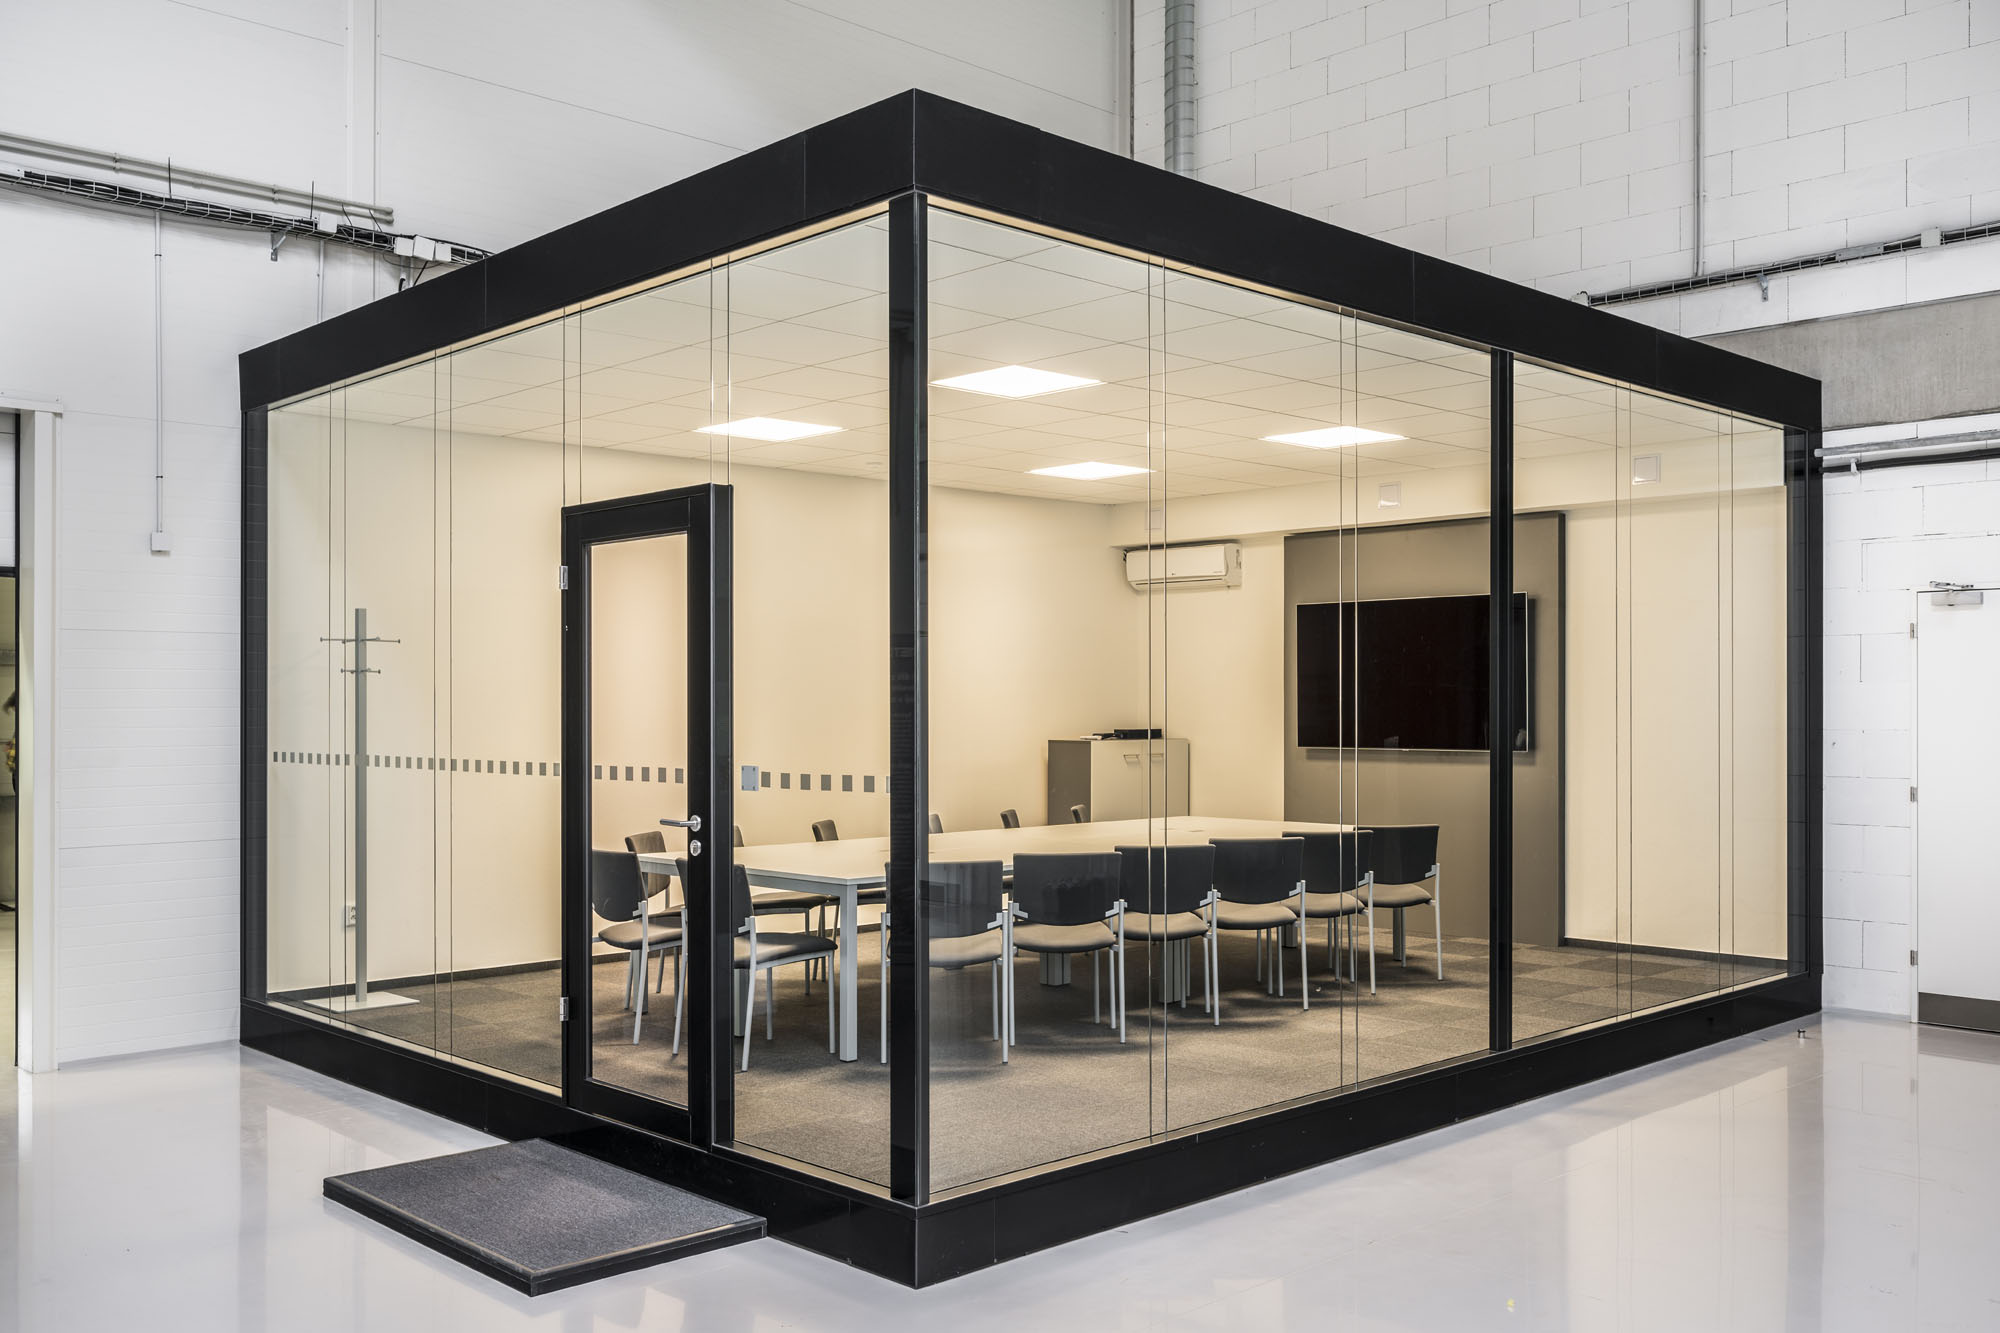 In-hall unit with glazed partitions